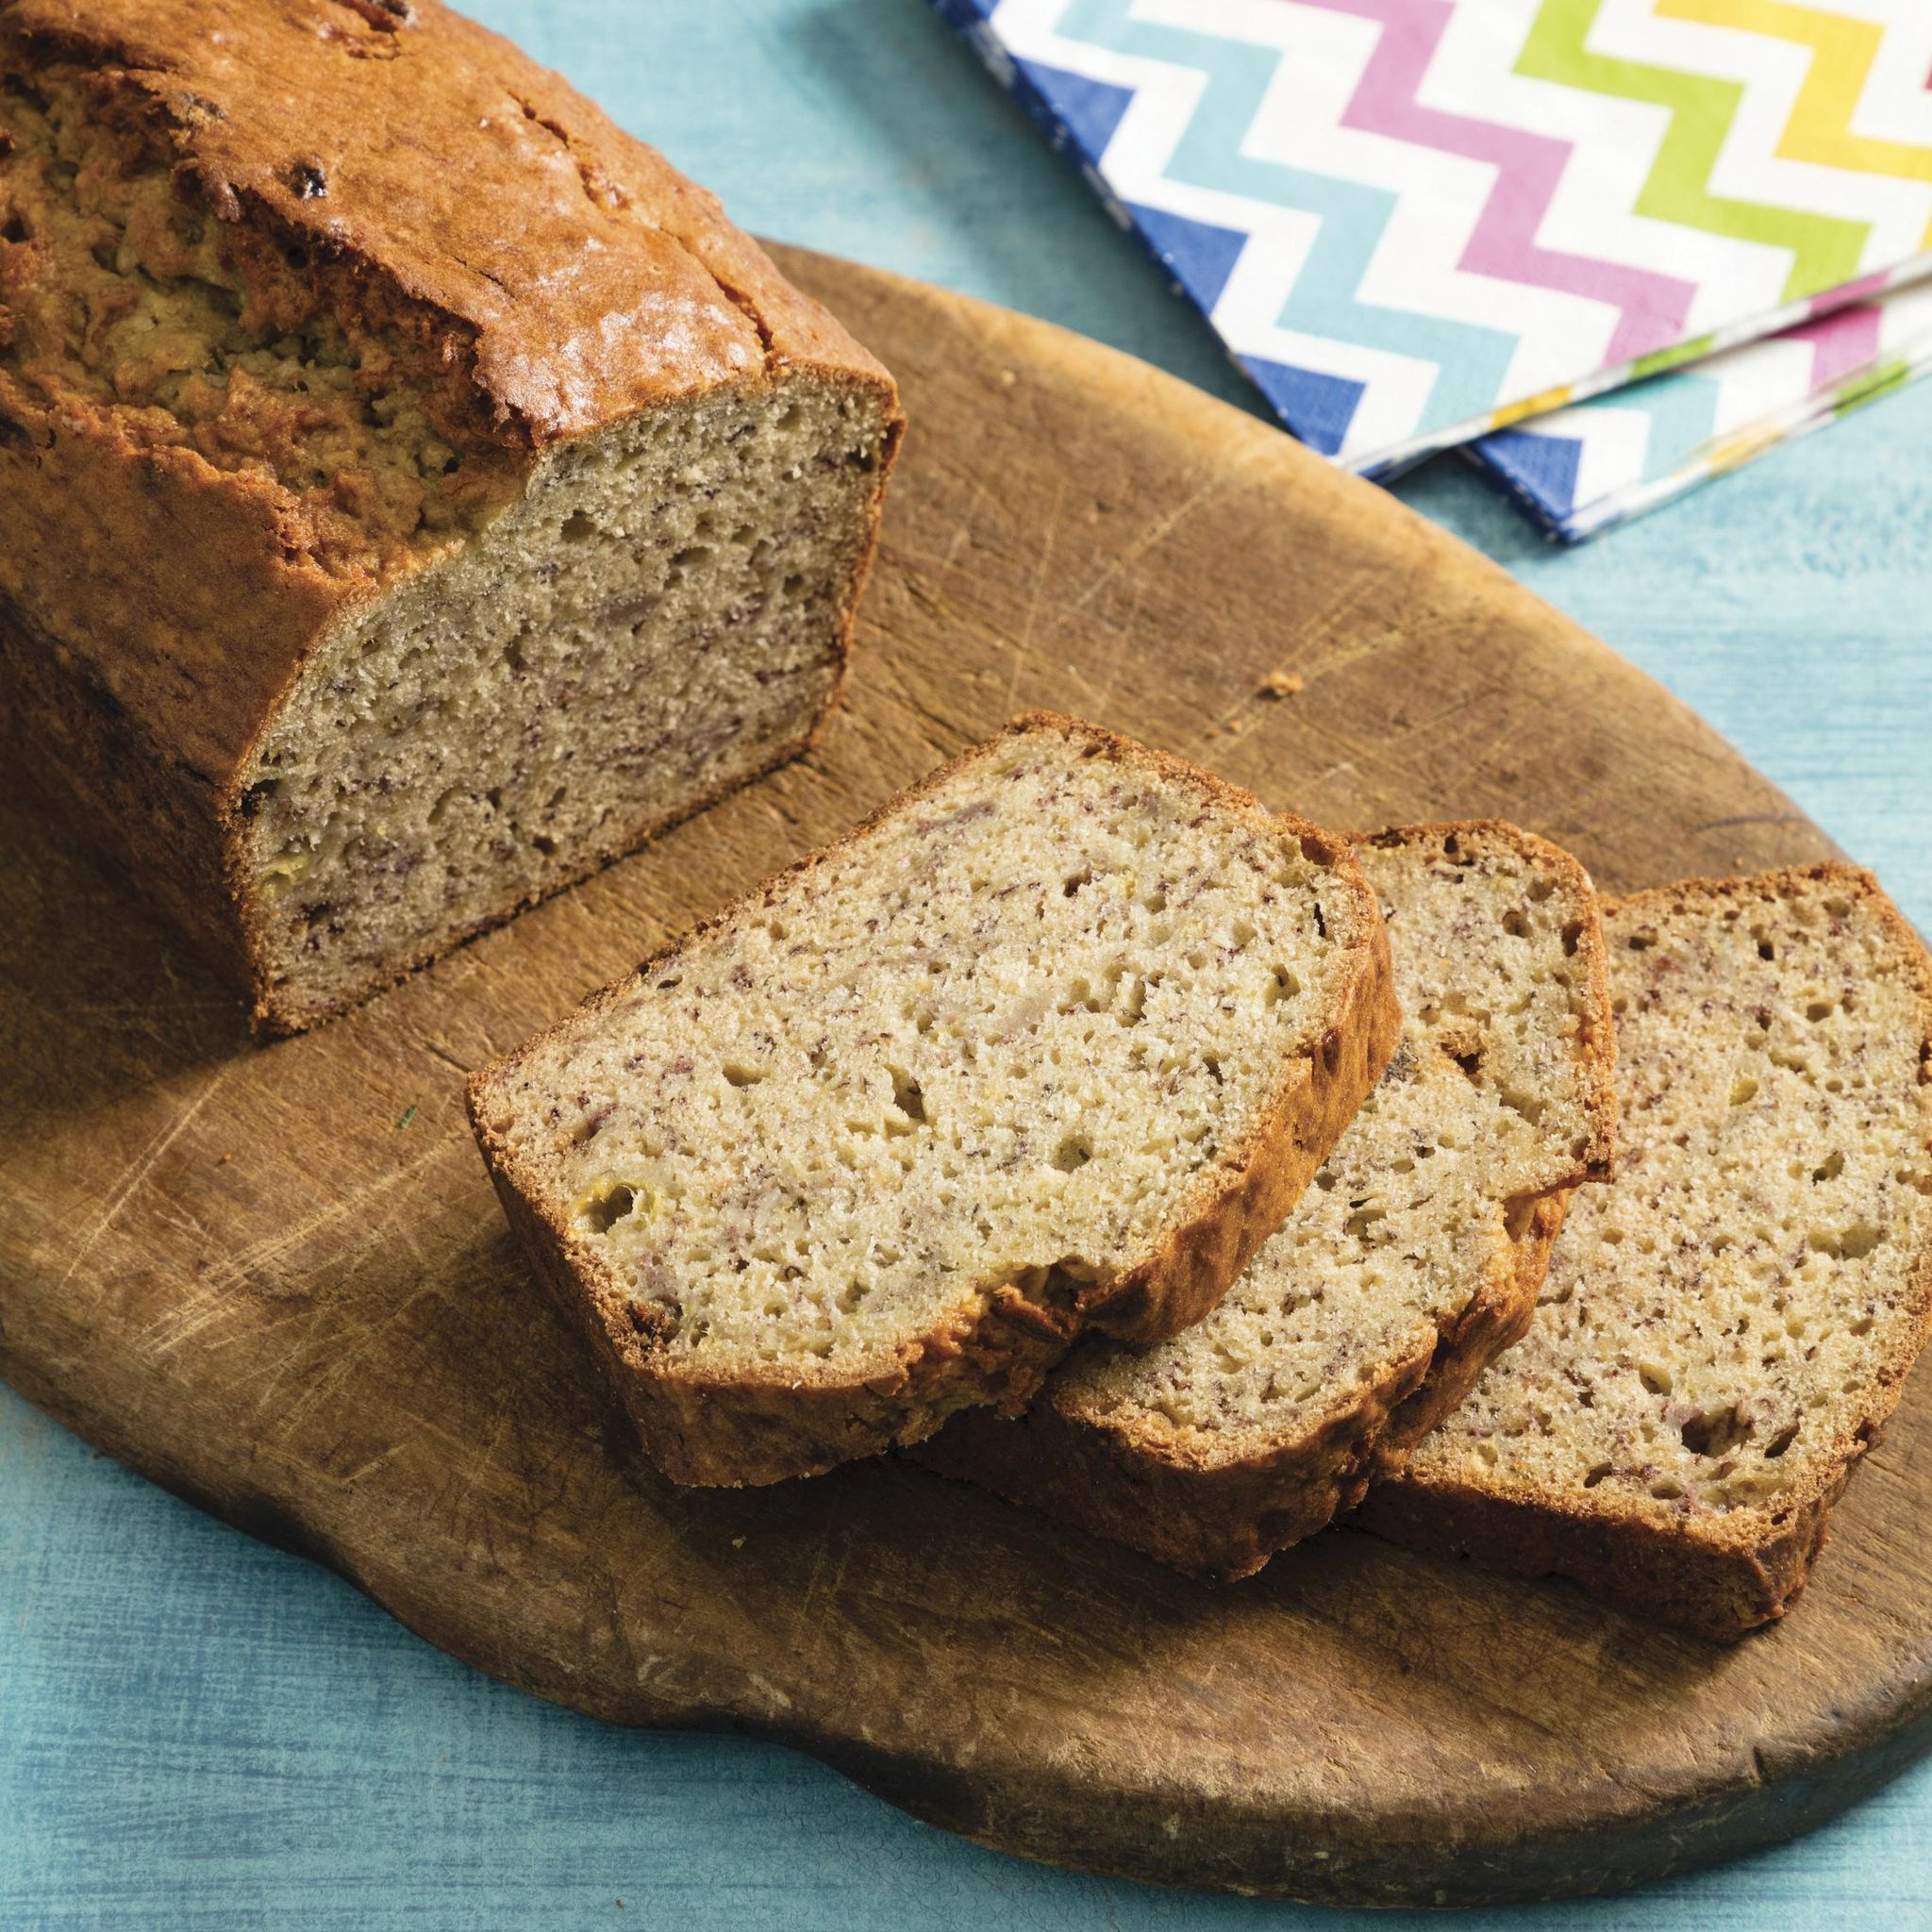 Dress up your banana bread with nuts, spices or chocolate